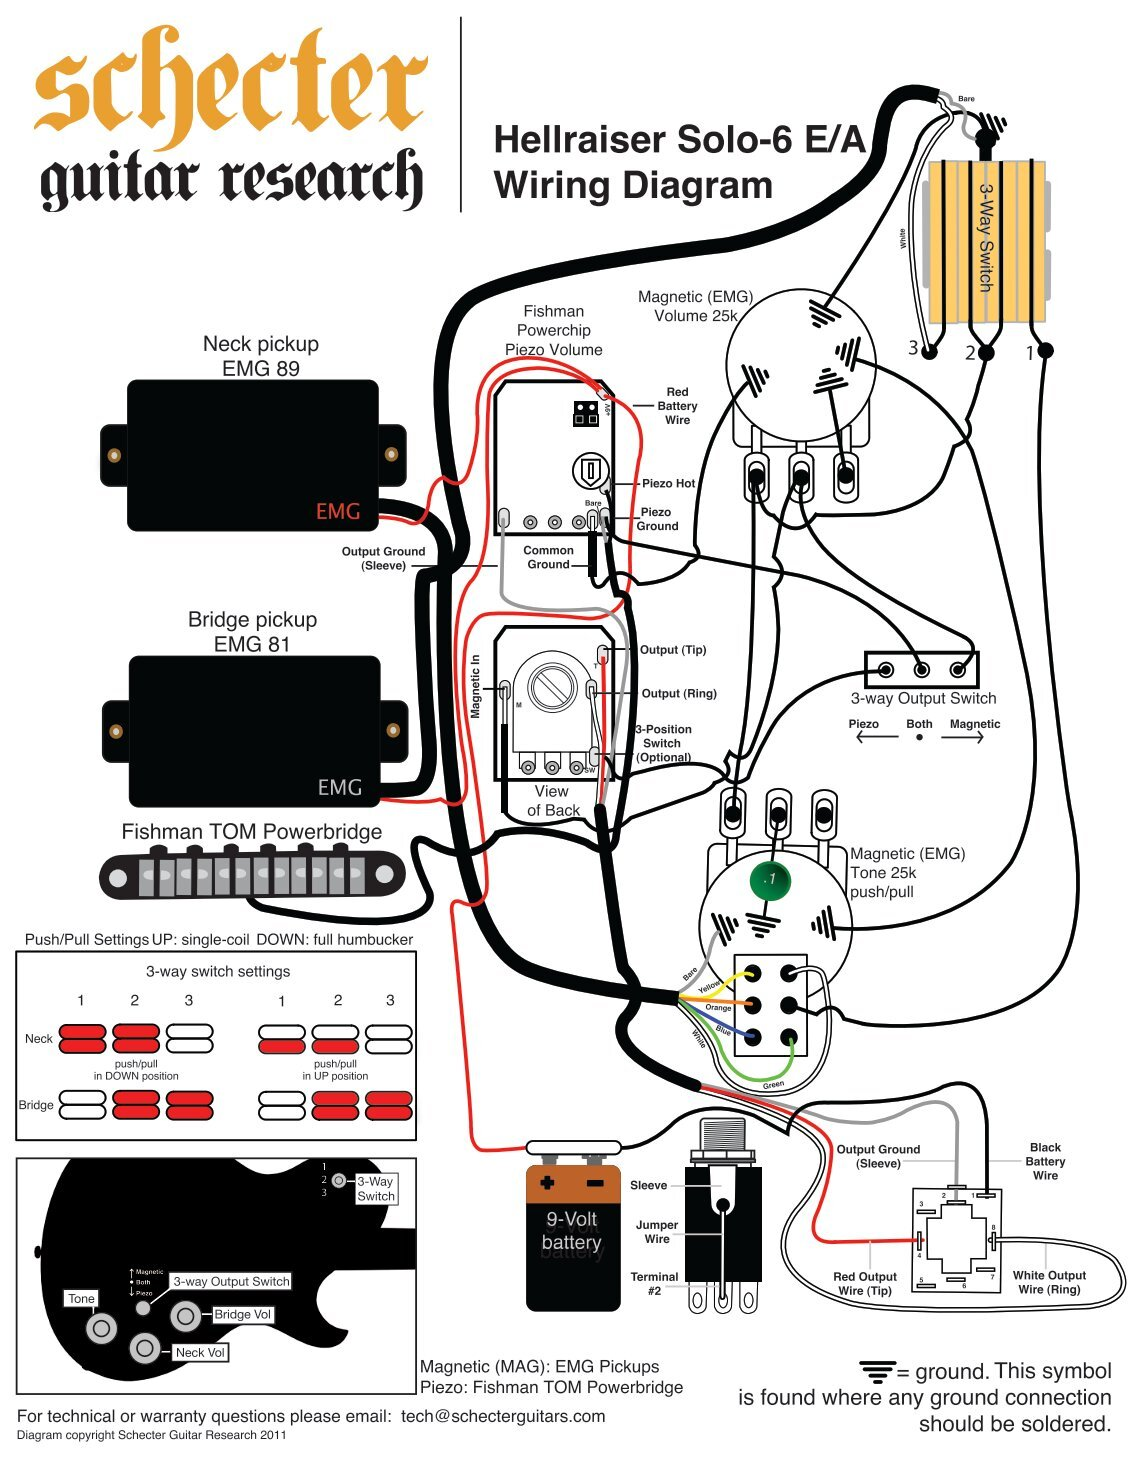 hellraiser solo 6 wiring diagram schecter guitars?quality\\\\\\\\\\\\\\\\\\\\\\\\\\\\\\\=85 emg hz wiring diagram color emg hz passive wiring diagram \u2022 205 ufc co emg single coil wiring diagram at mifinder.co